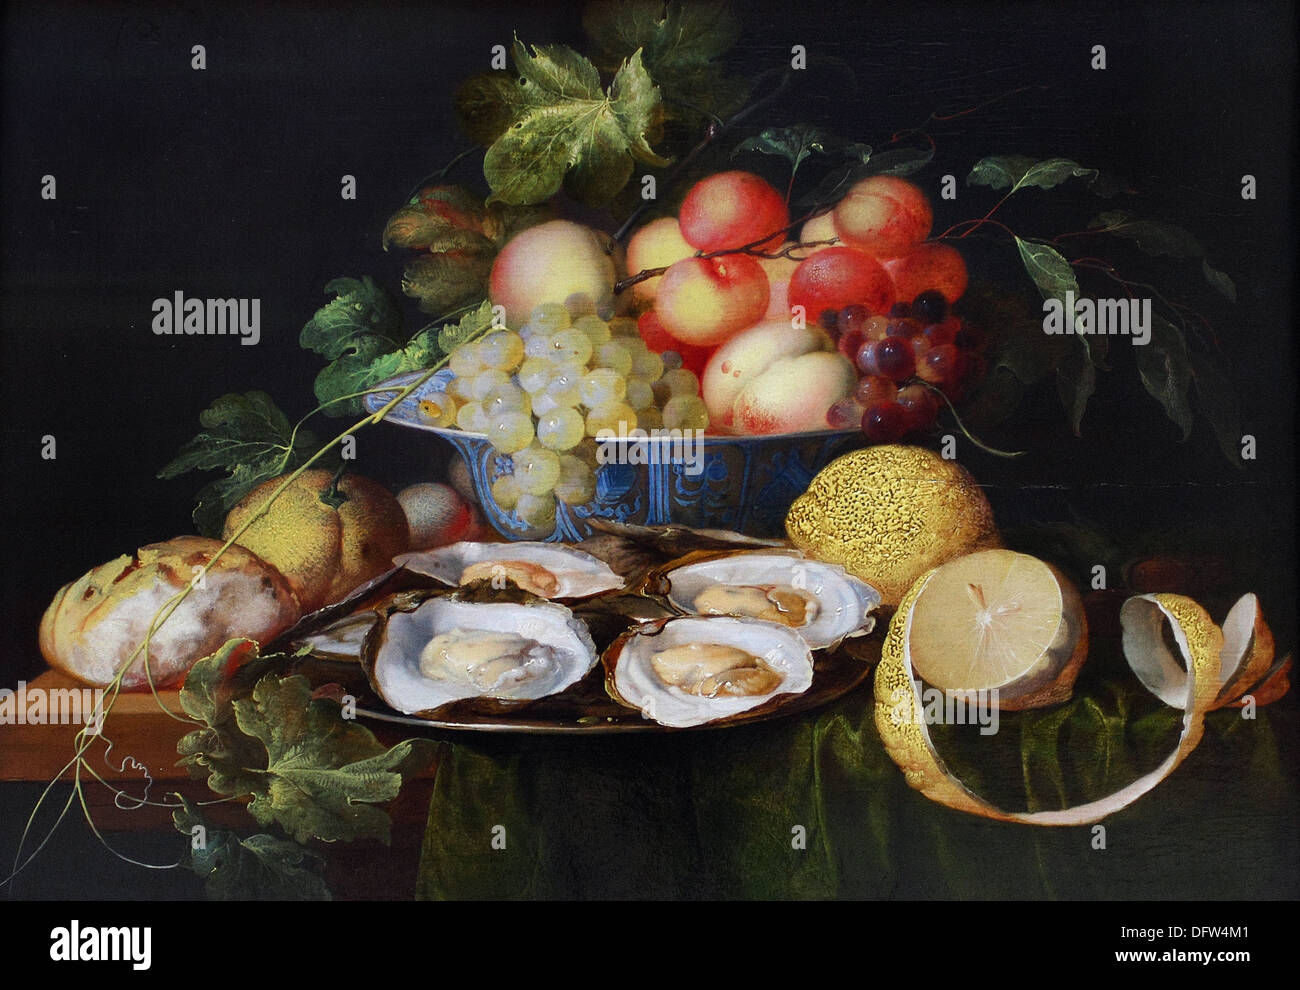 Jan Davidsz de HEEM - Still life with fruit and oysters - 1640 - Museum of Fine Arts - Budapest, Hungary. Stock Photo